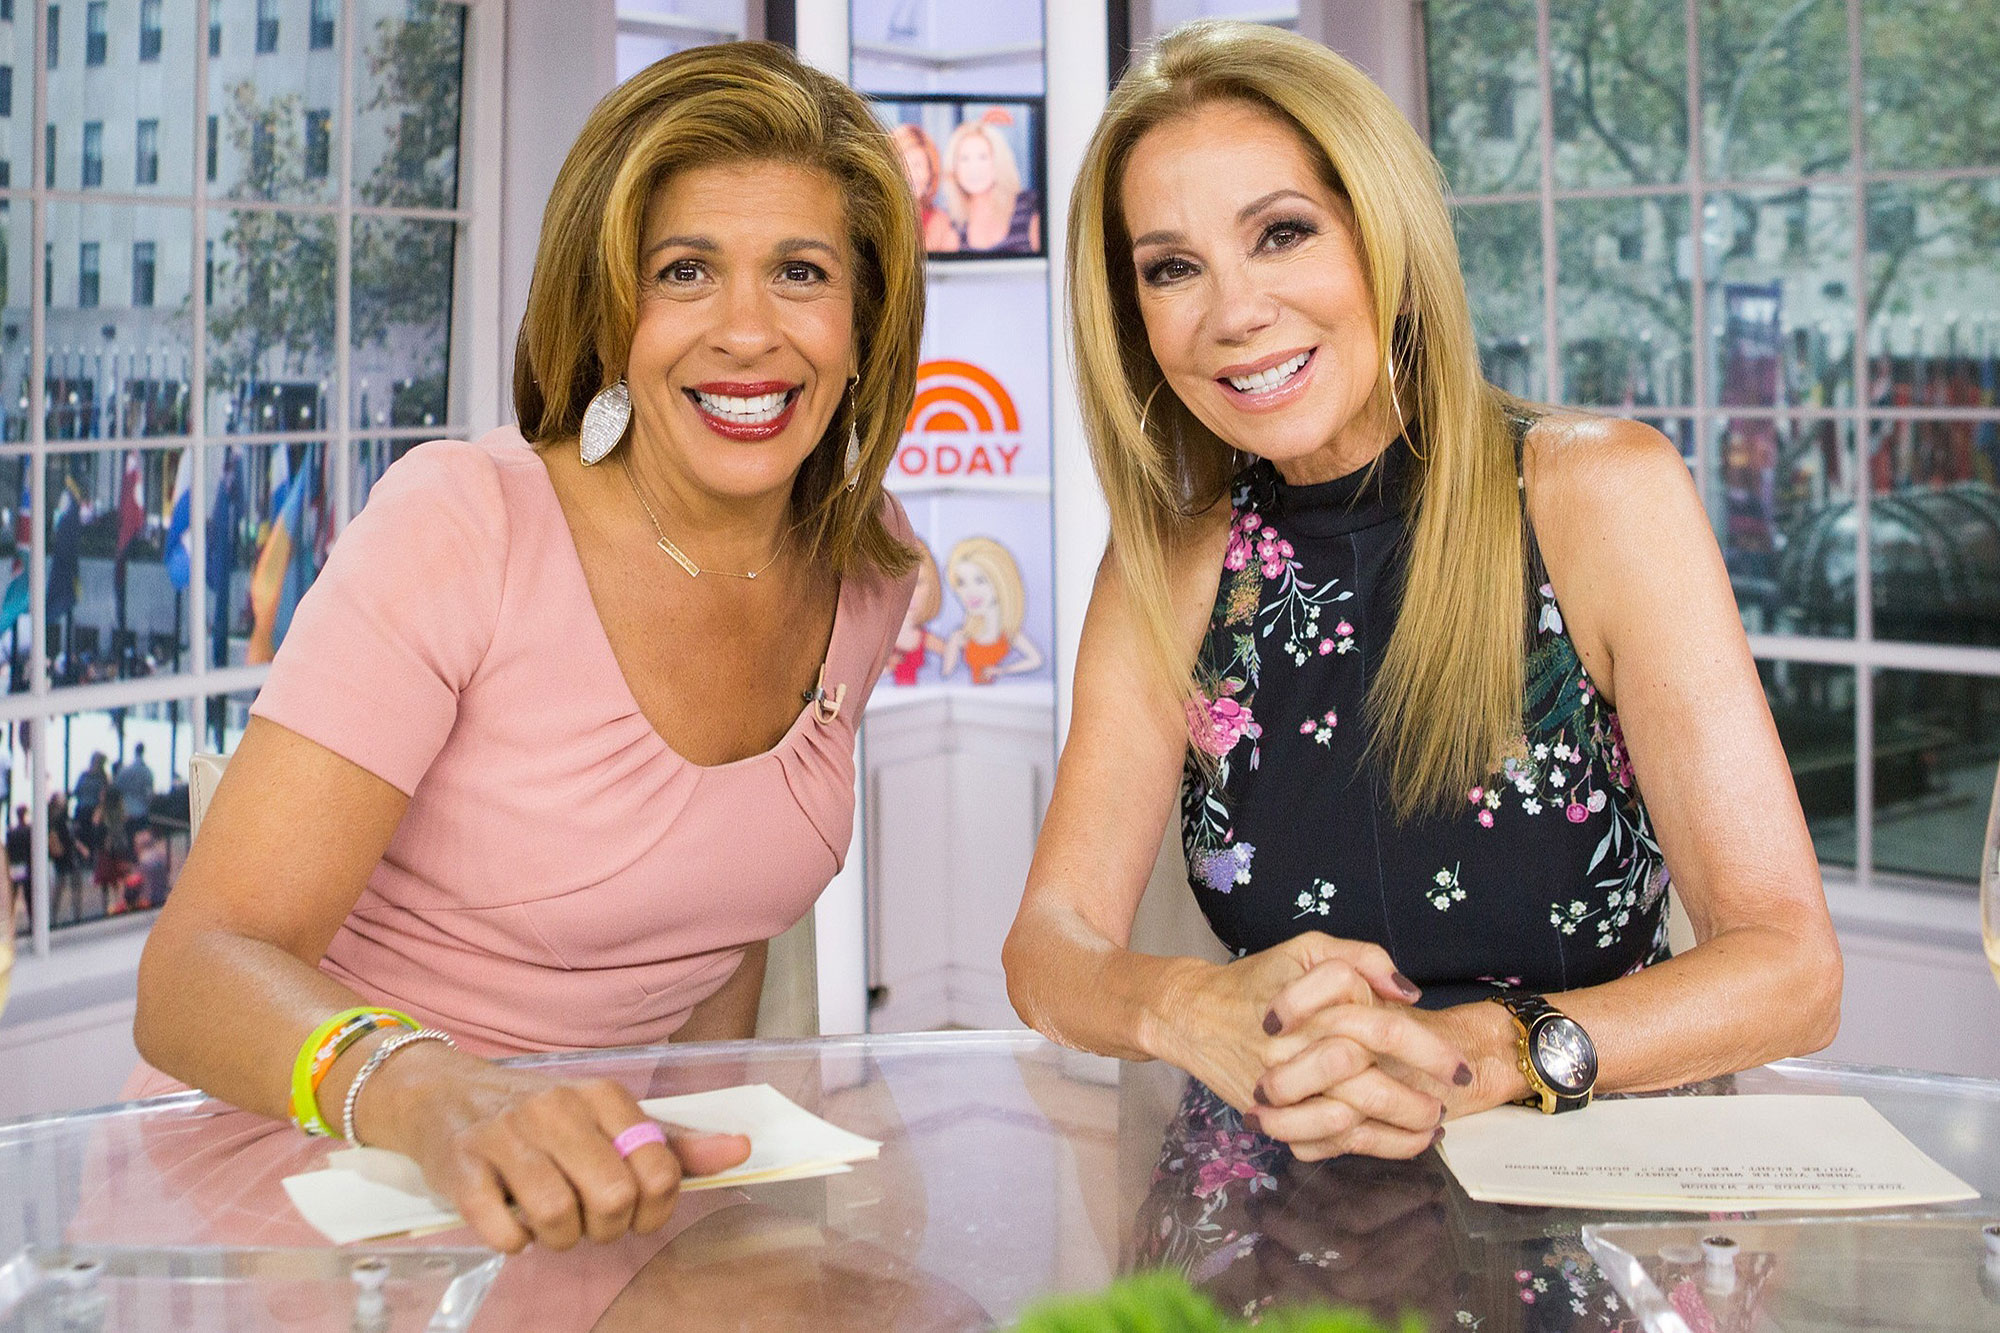 kathie-lee-gifford-reminisces-about-time-with-hoda-kotb-on-today-before-leaving-the-show-gets-emotional